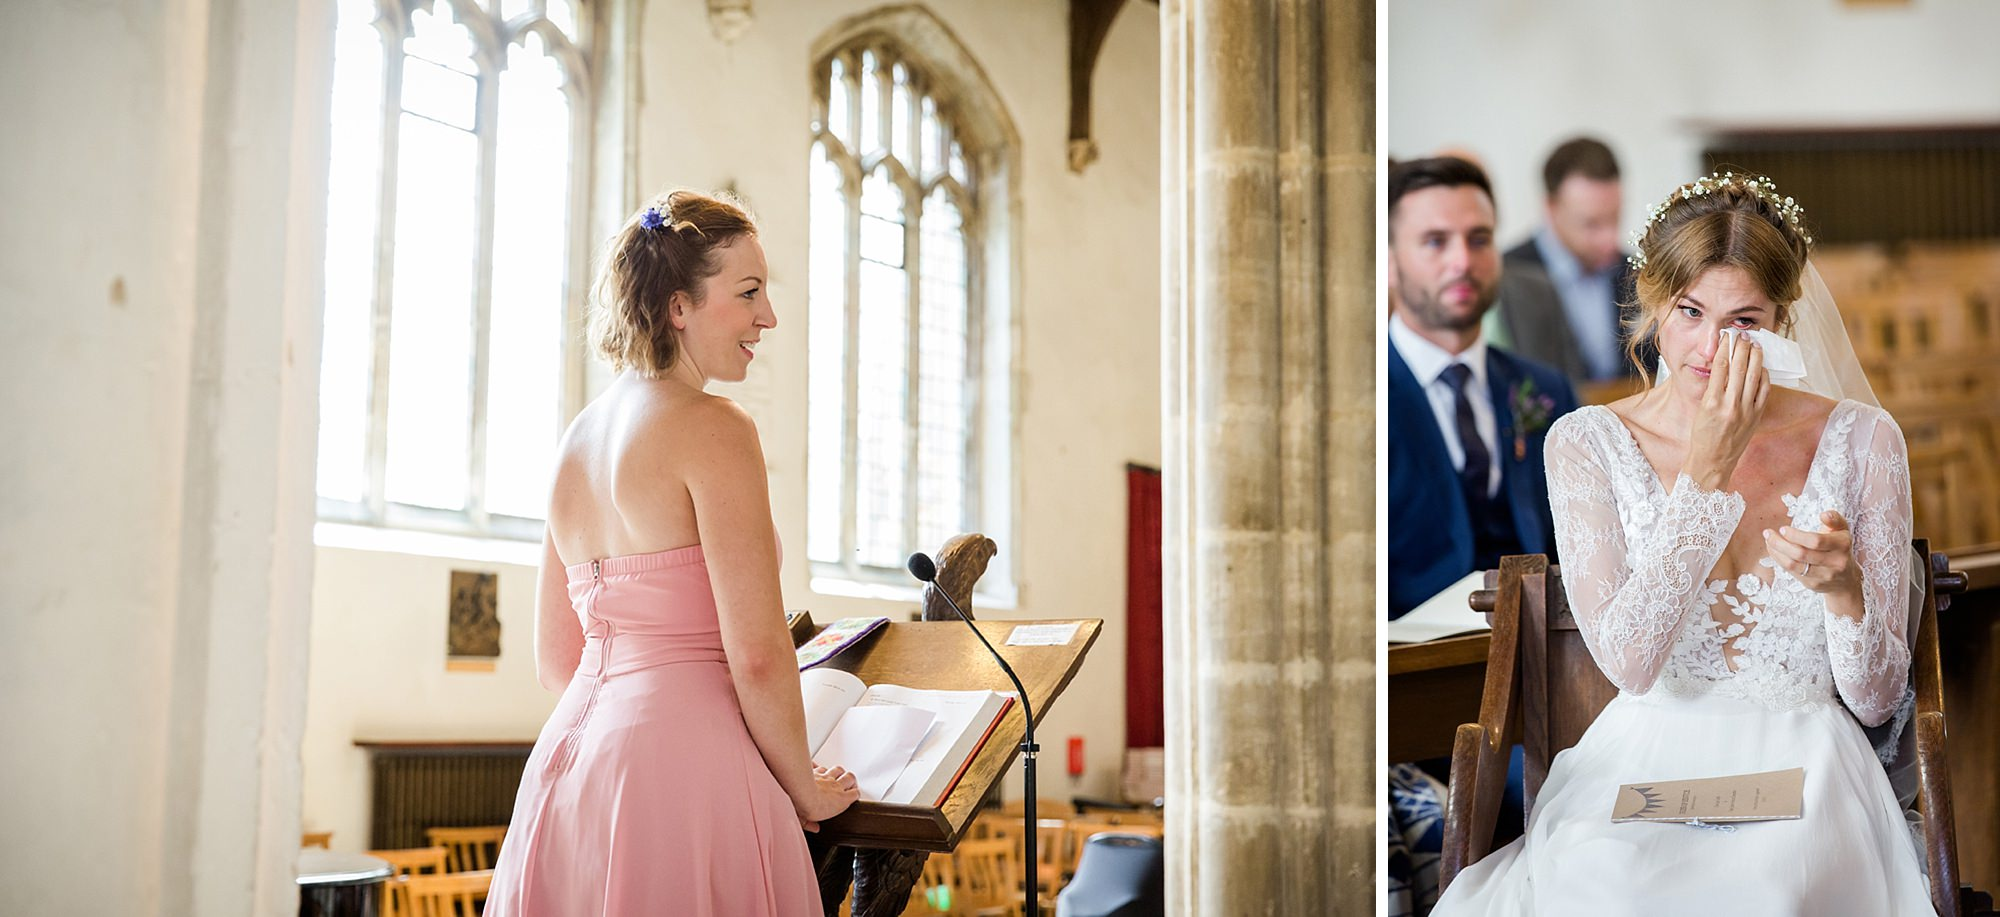 Marks Hall Estate wedding photography reading curing ceremony